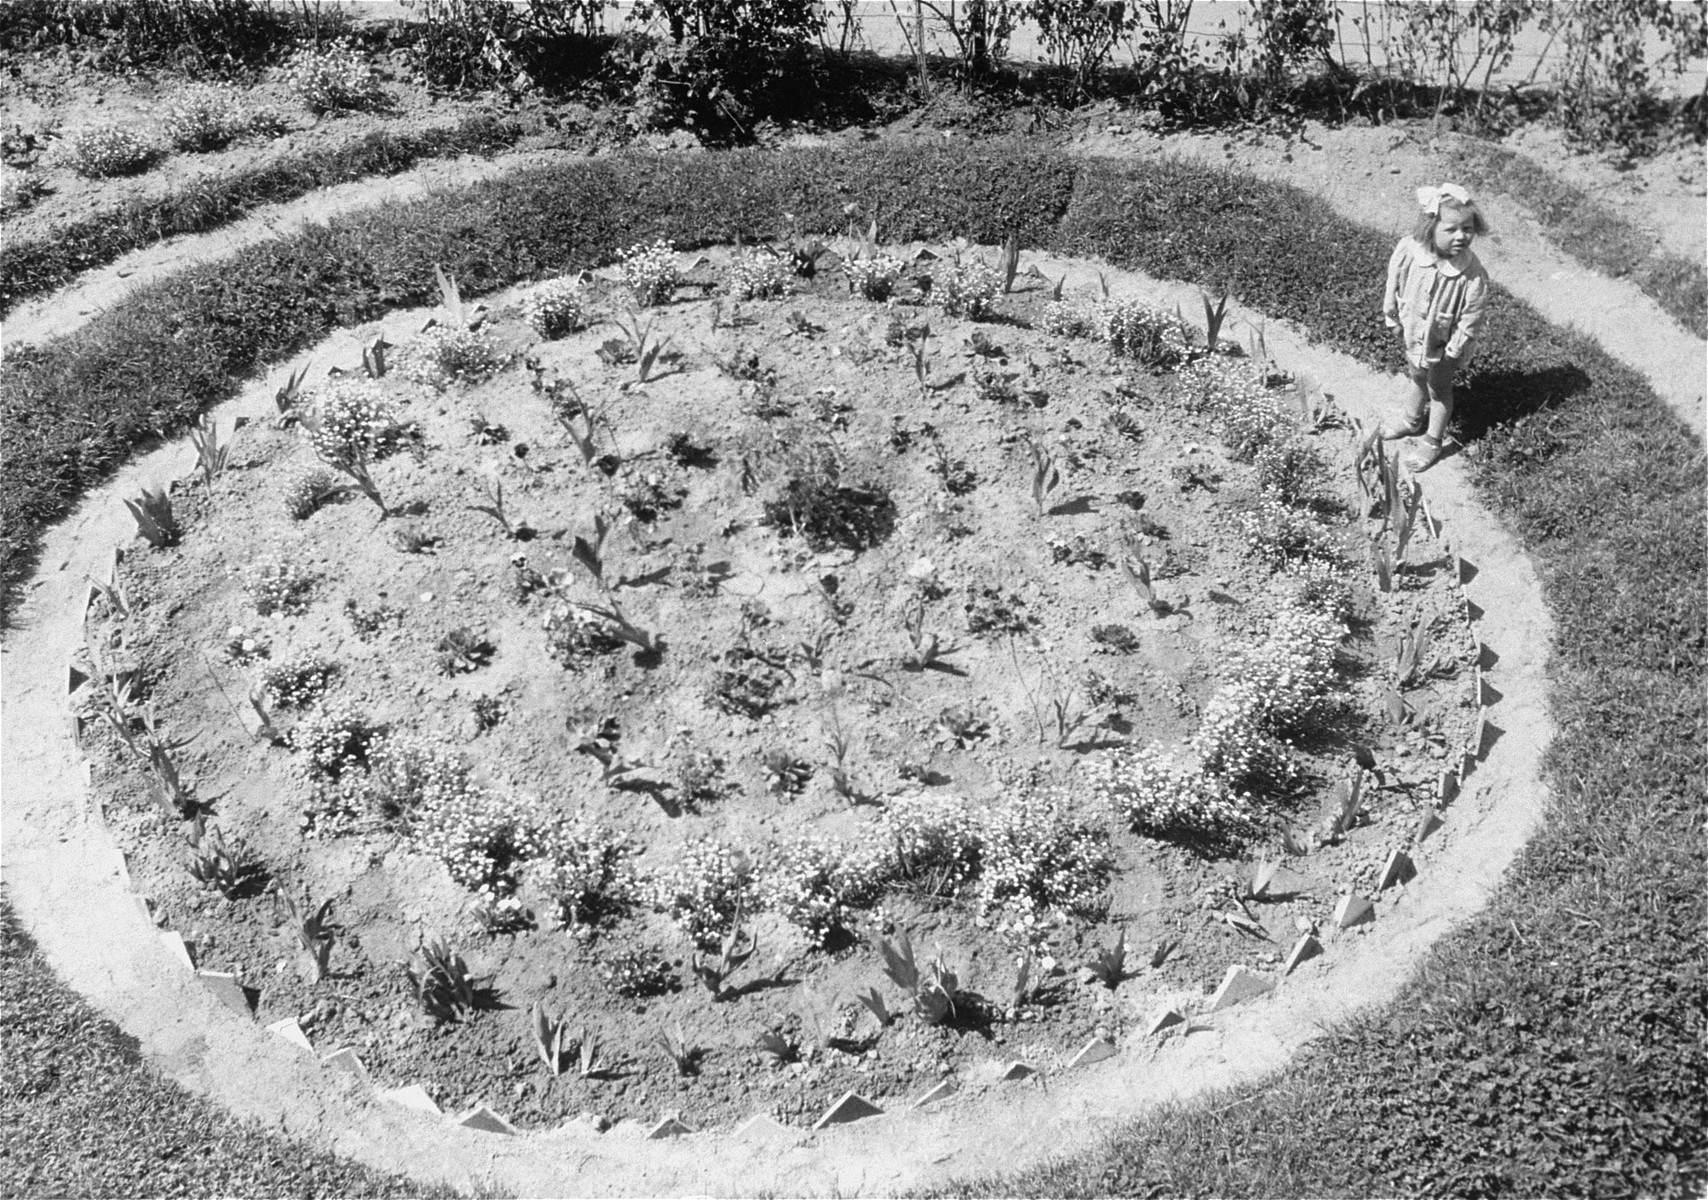 A small child stands in a garden at Bindermichl DP camp.